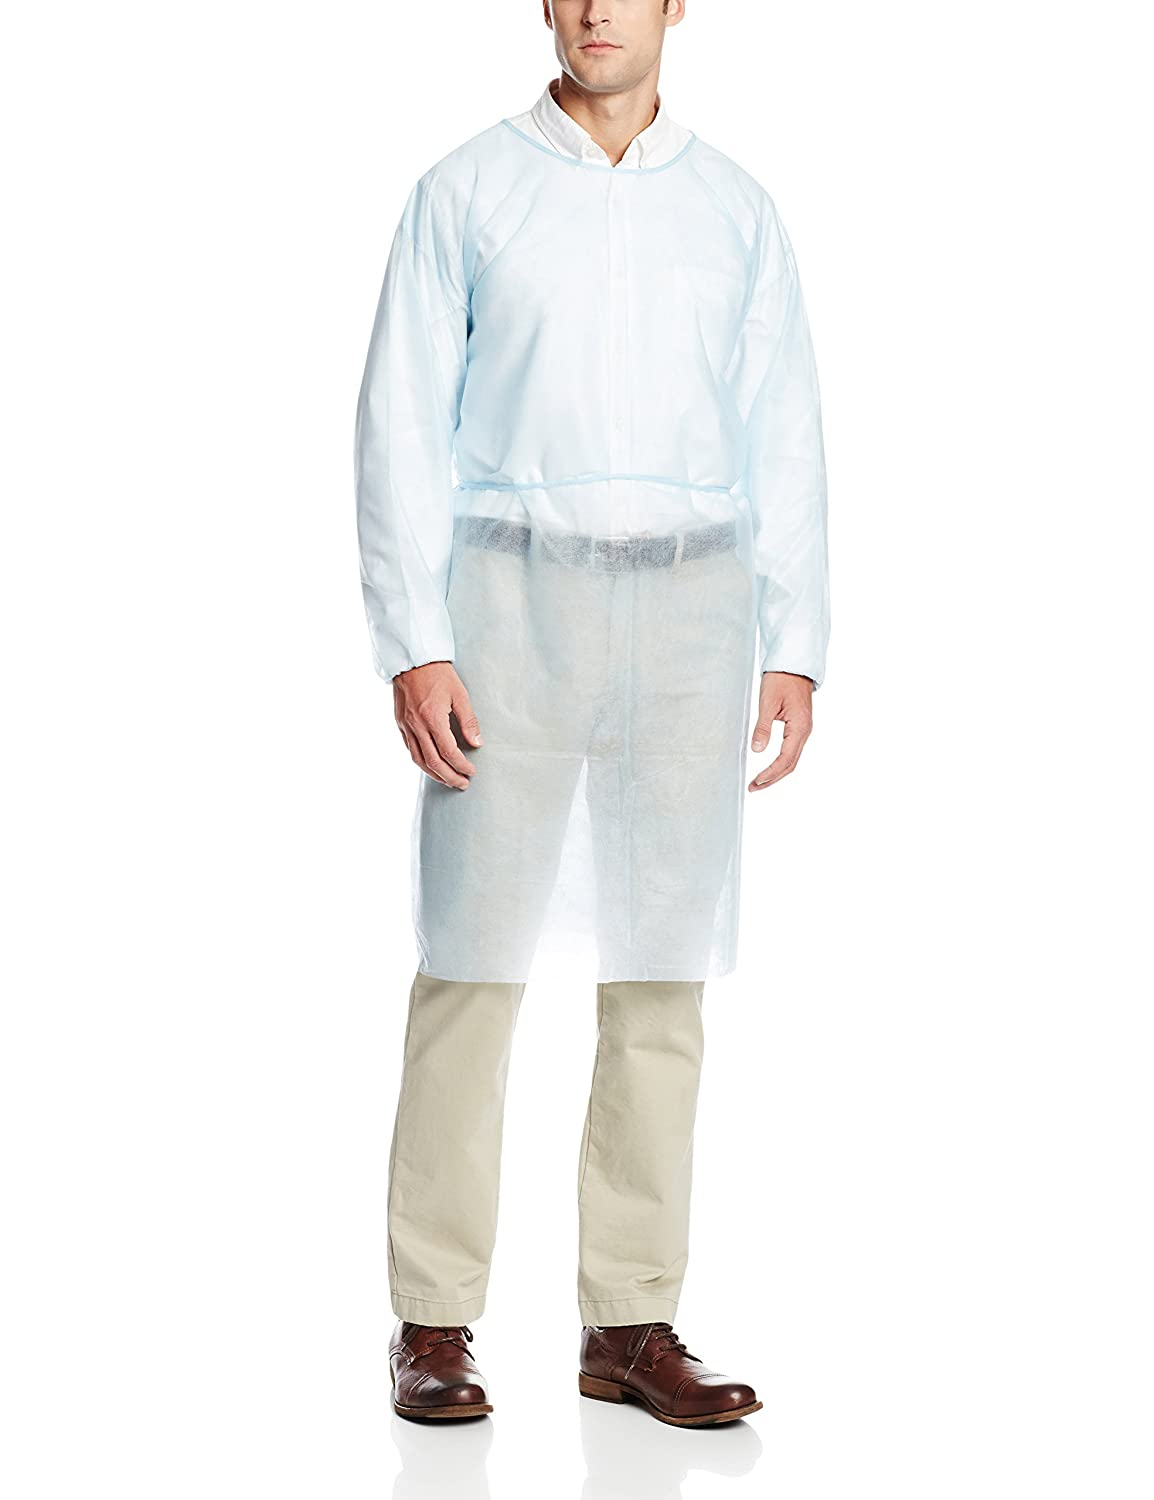 L XL XXL Size Disposable Coverall Security Clothing Dust-proof  Labour Suit Universal Nonwovens Security Protection One-pieces